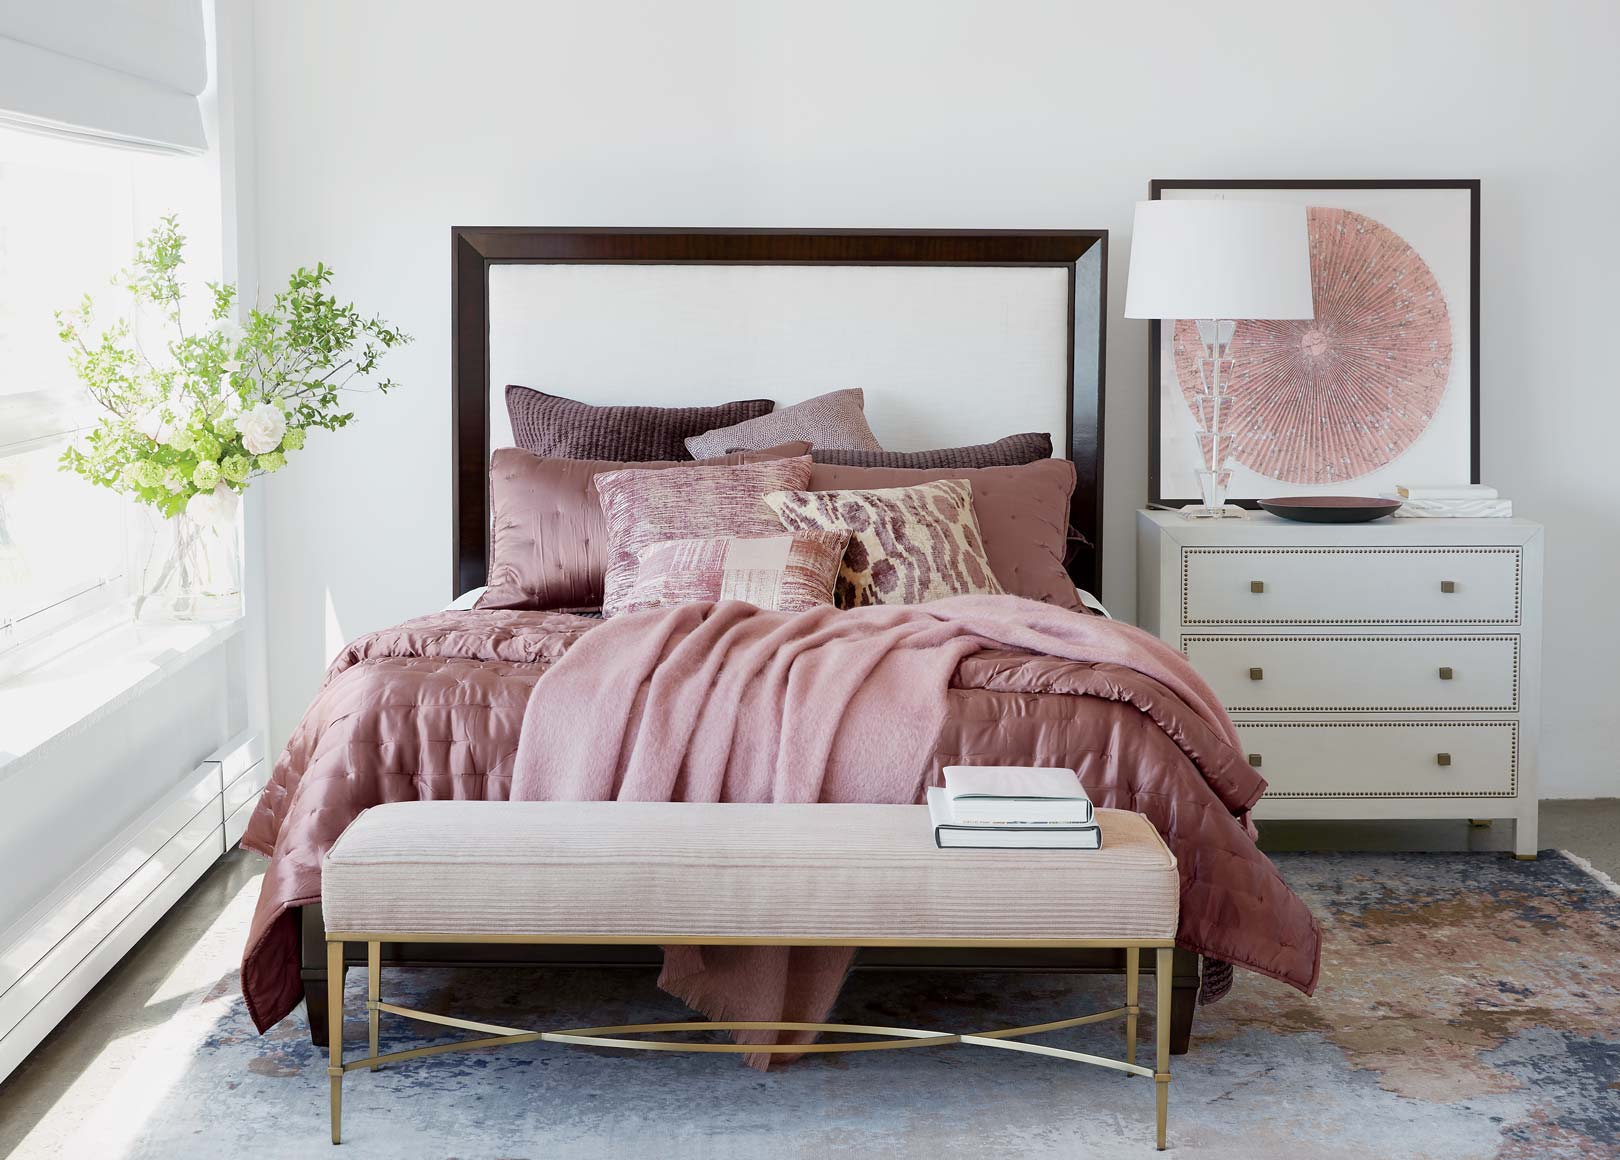 Dusty Pink Hollywood Glamour Bedroom Ideas | Ethan Allen ...